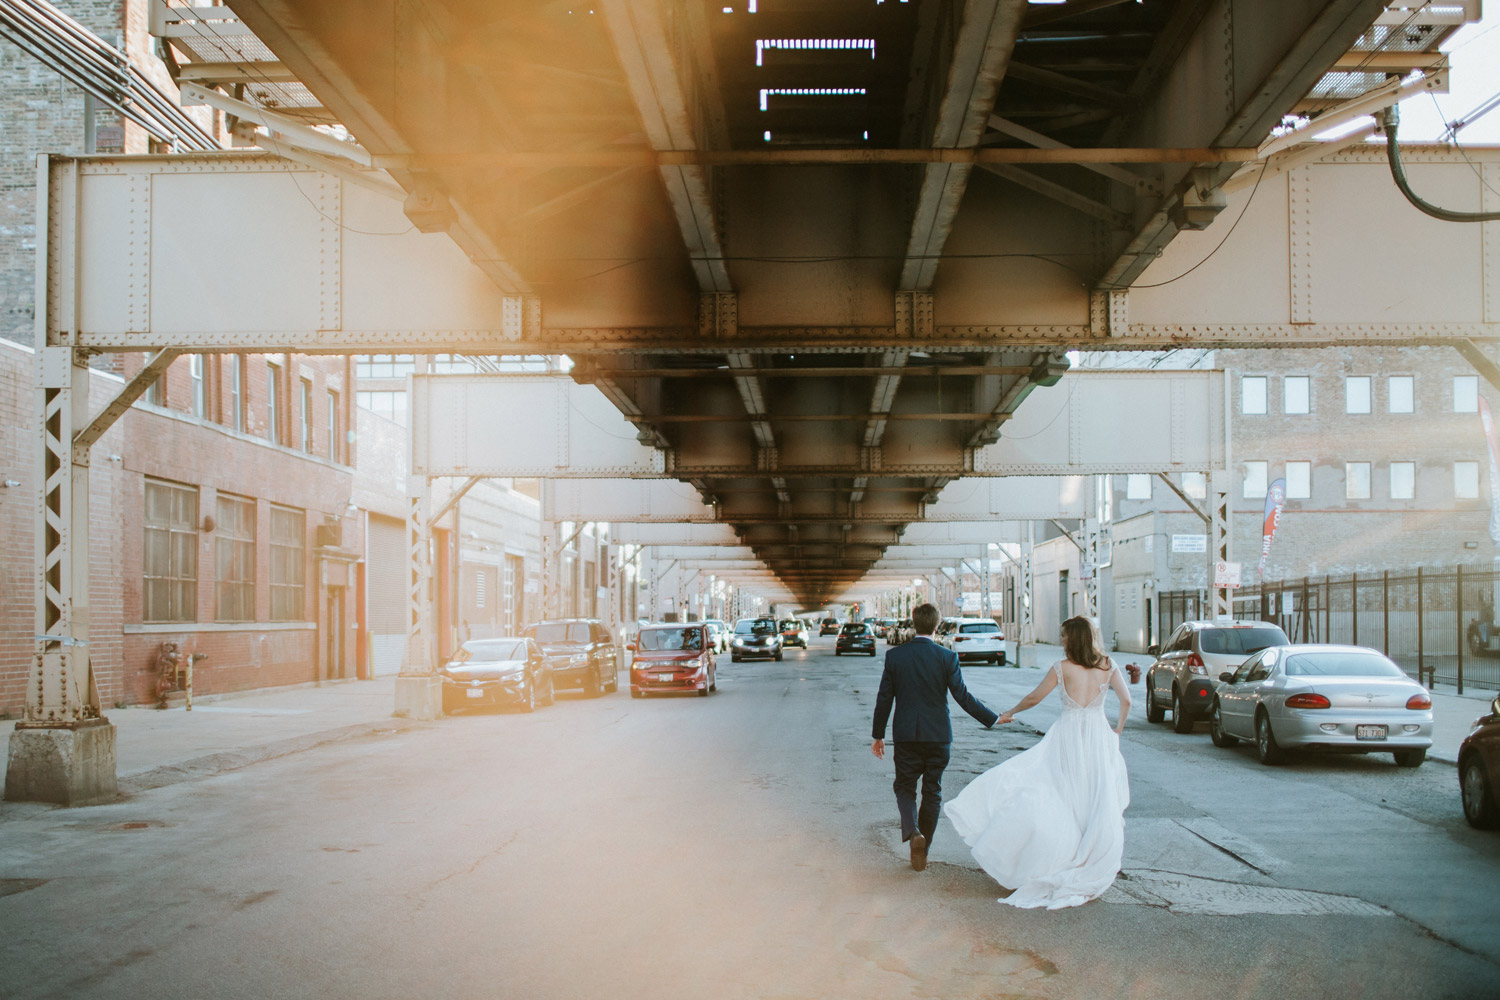 Bride and groom walking under train tracks in Chicago